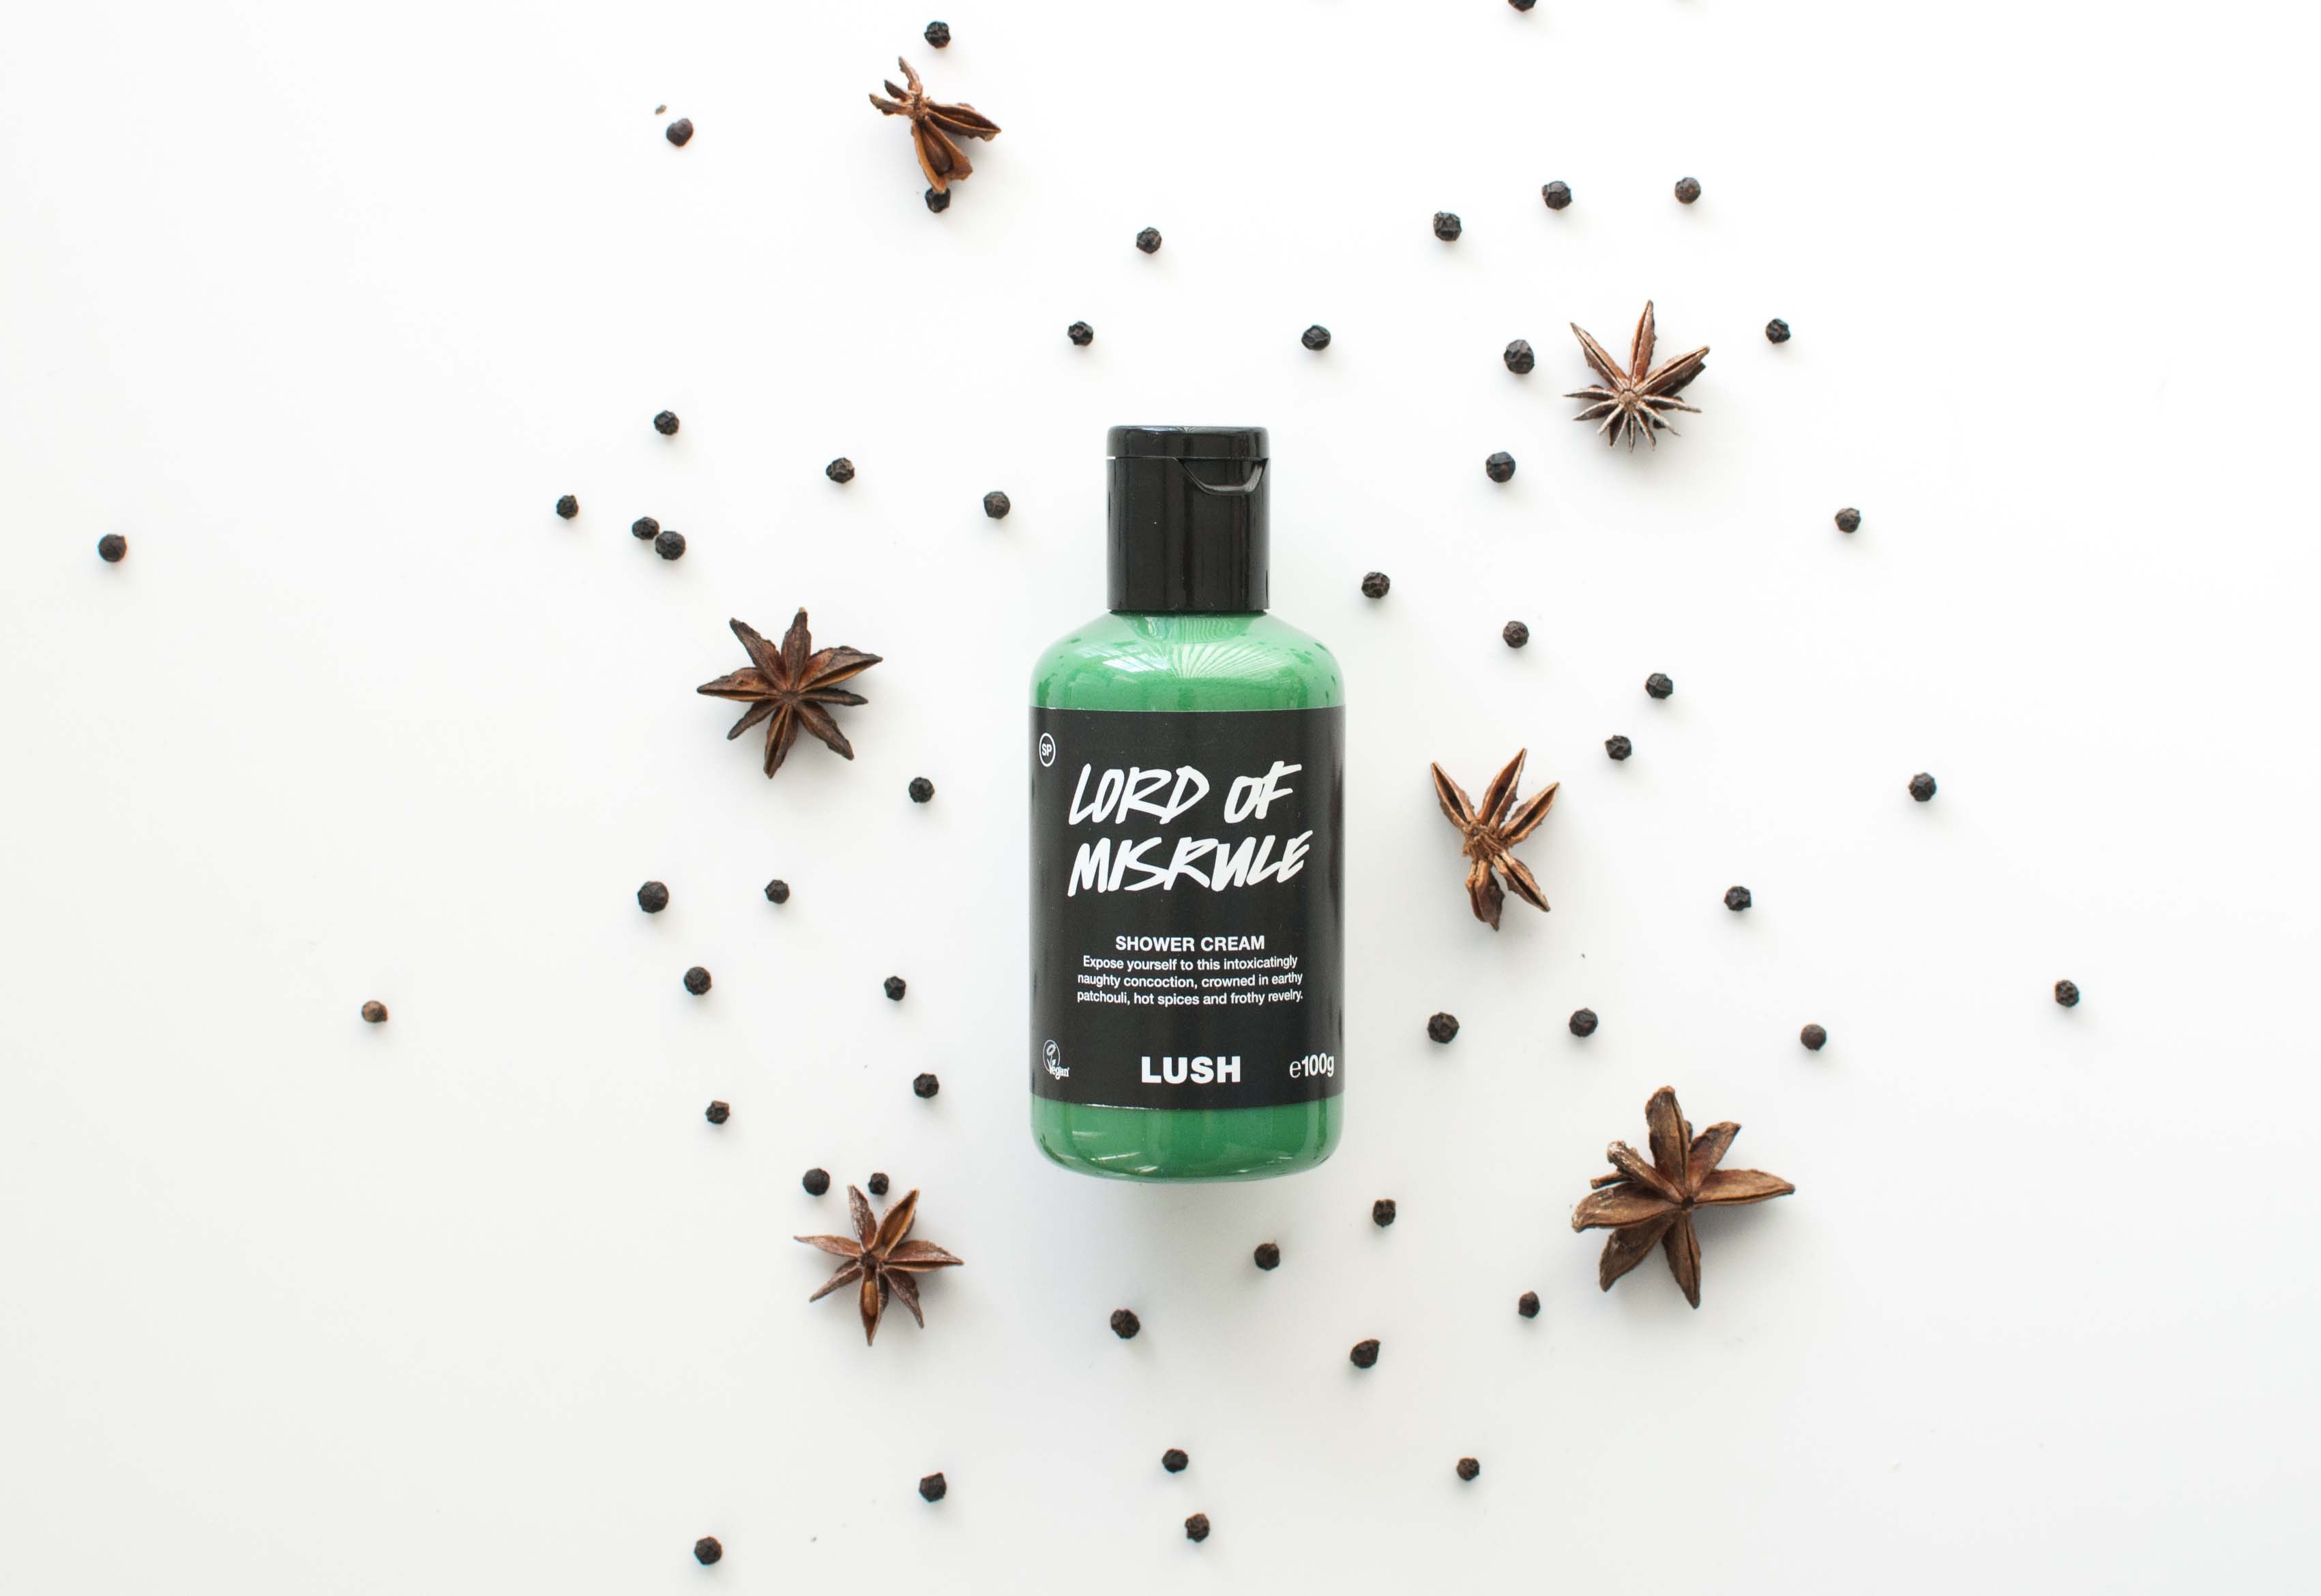 review lush lord of misrule shower cream